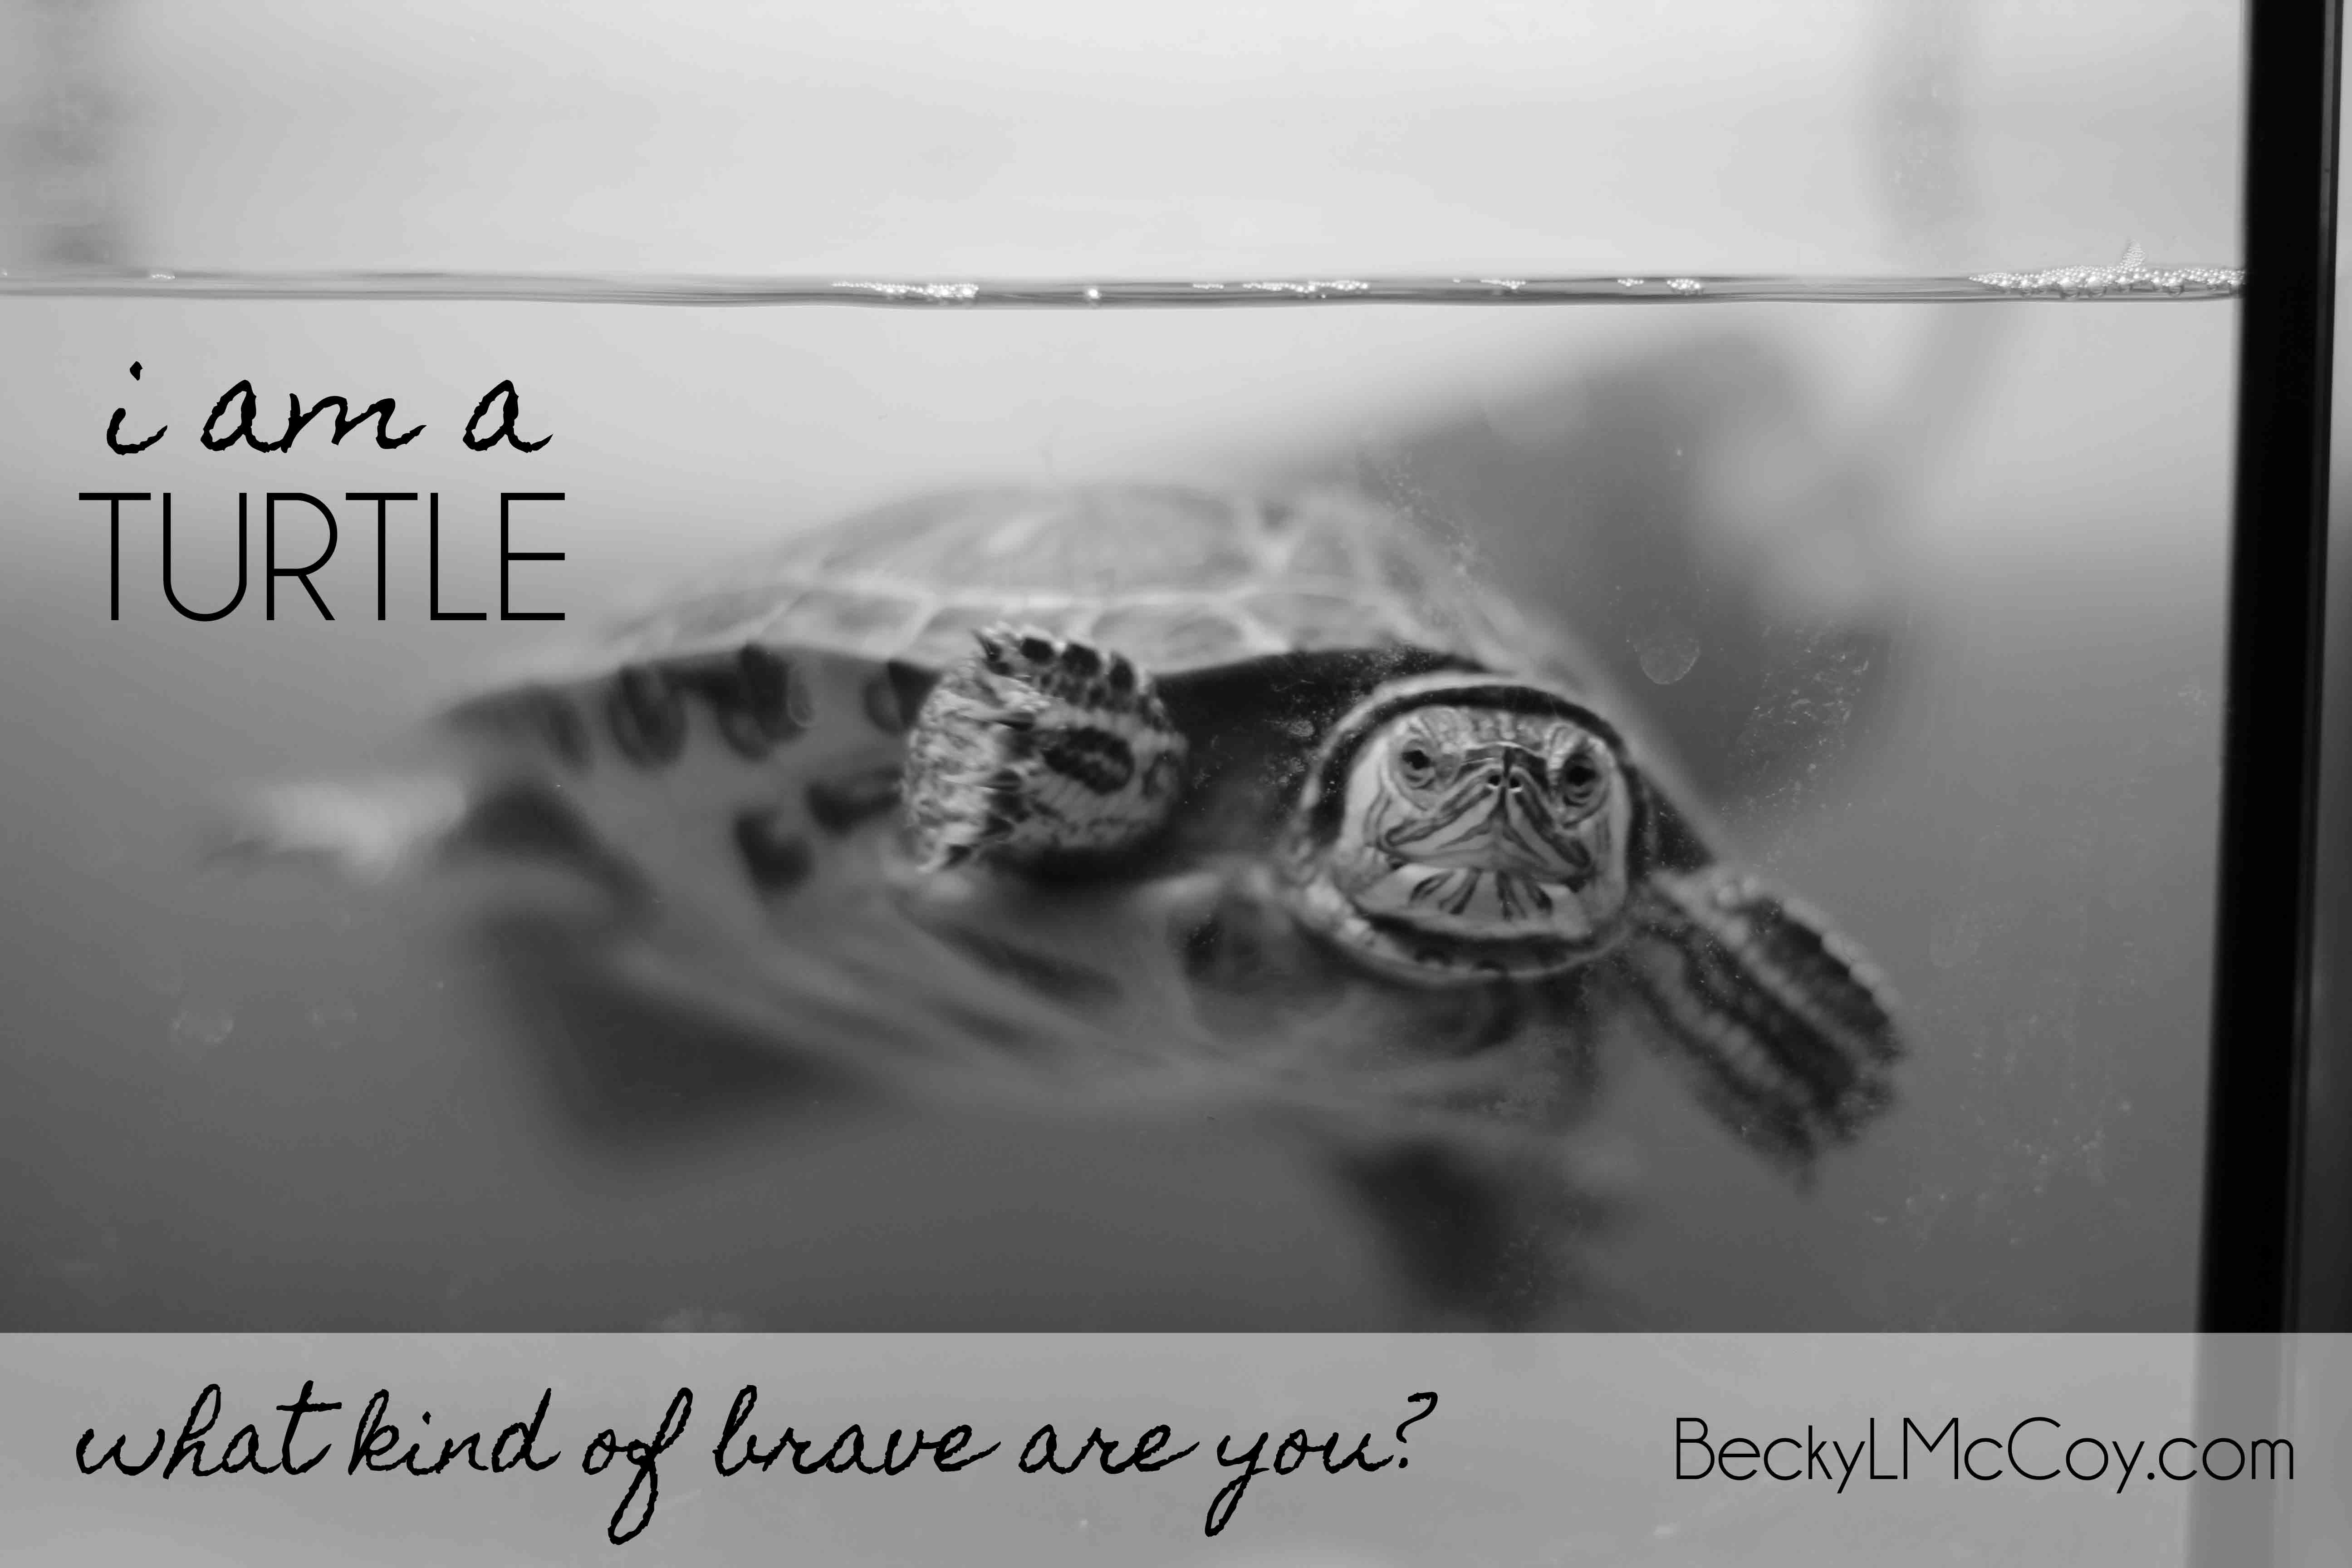 What Kind of Brave Are You? | BeckyLMcCoy.com